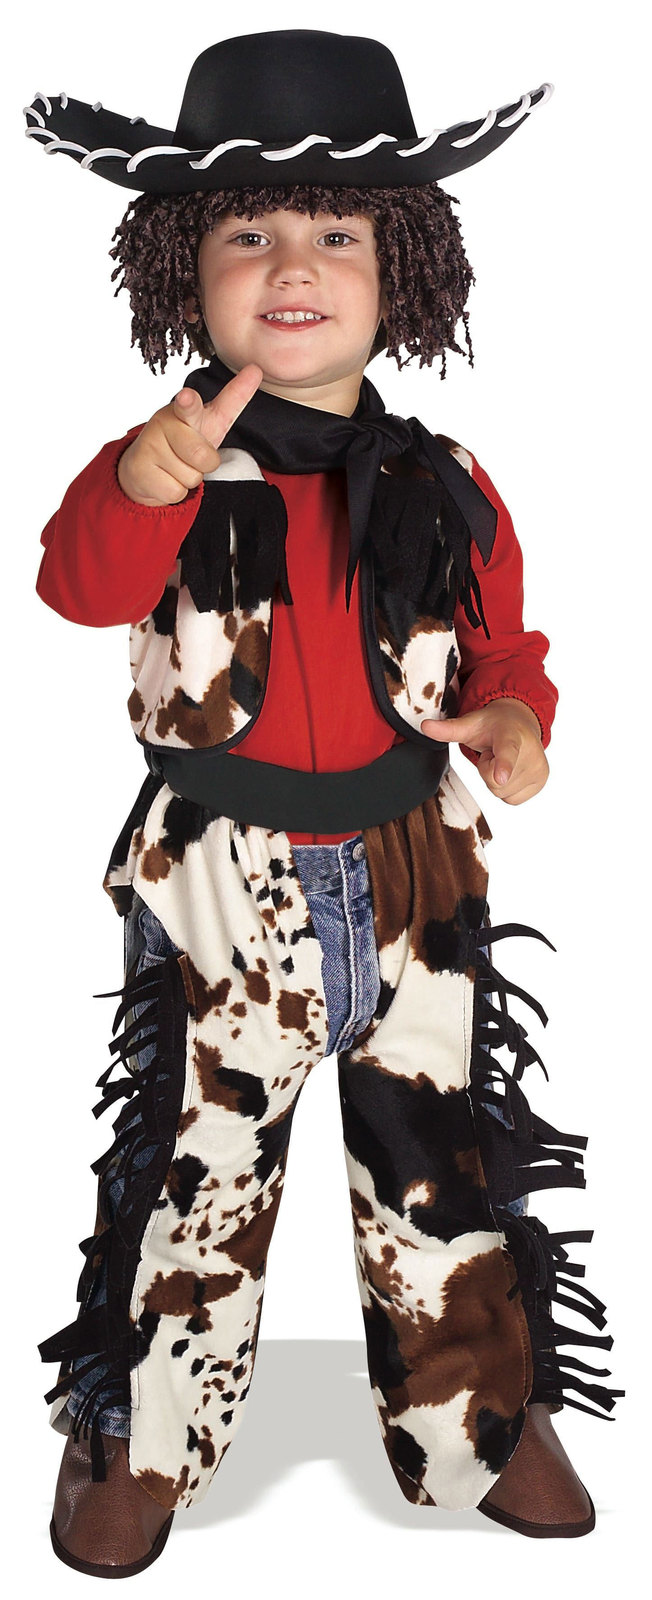 Primary image for Size 1-2 Years Toddlers Cowboy Halloween Costume